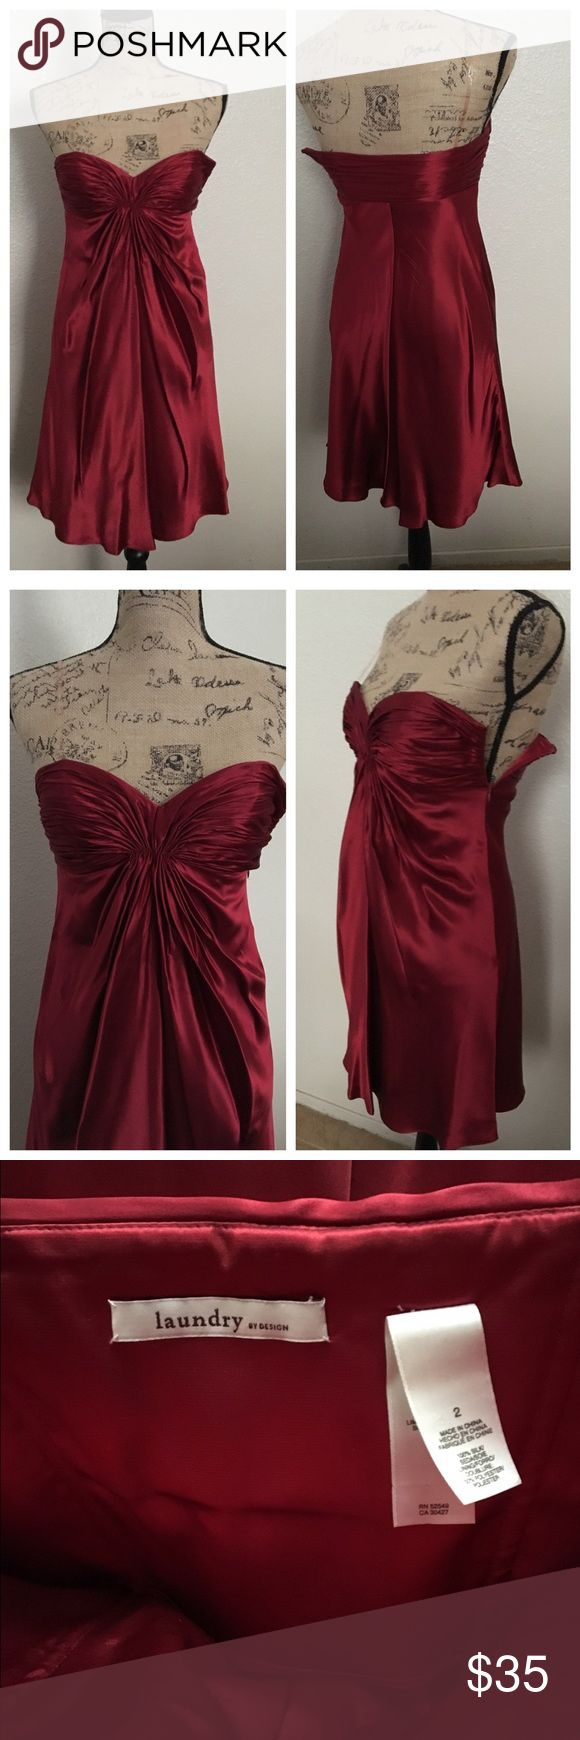 Laundry, Red Silk dress 🚫No trades🚫 ✨Price is firm✨   Absolutely beautiful, soft and sexy little dress by Laundry. 100% silk with a flattering fit. Made for a petite woman and not much room for big busts. Dress remains in great condition ⚠️Nothing wrong with zipper, my mannequin isn't small enough to fit in that dress and wouldn't zip up all the way. Also last picture shows some signs of wear, missing left side clear strap and it has a couple of flaws nothing major and barely noticeable…